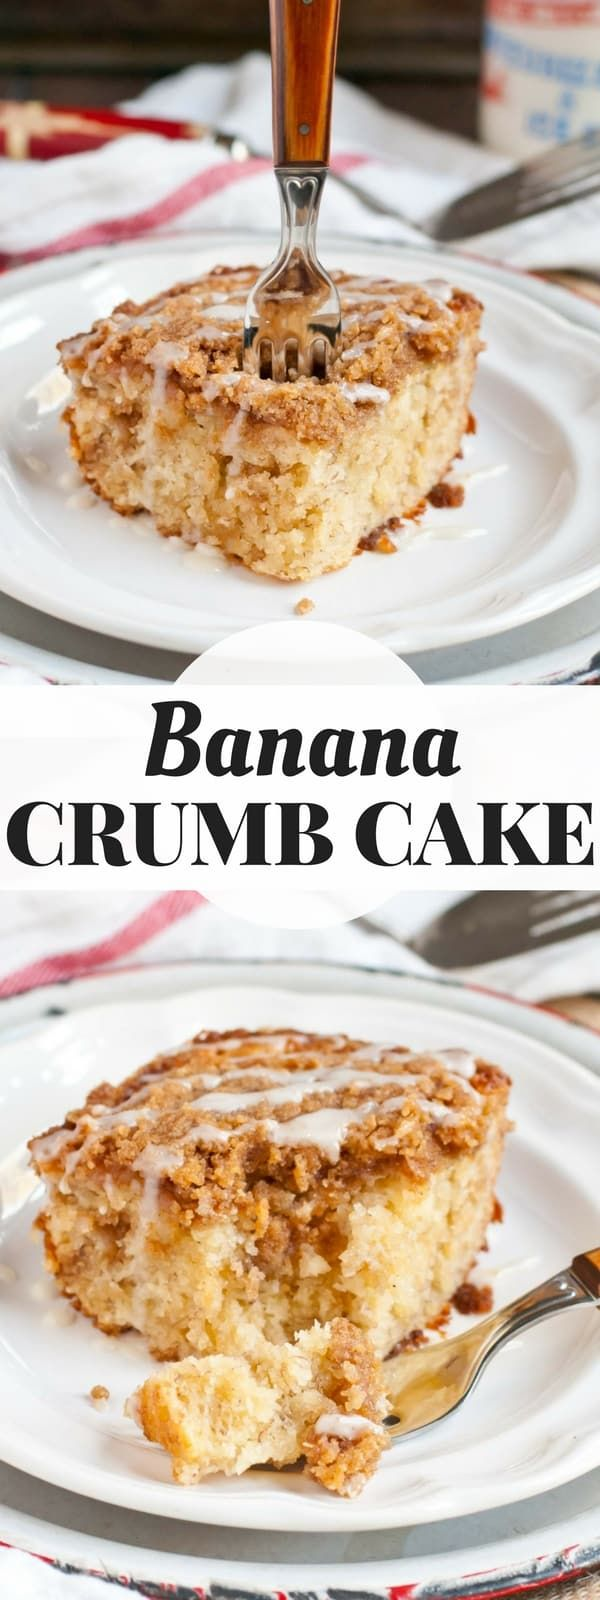 This Banana Crumb Cake is ultra moist with a thick layer of buttery brown sugar crumbs on top.